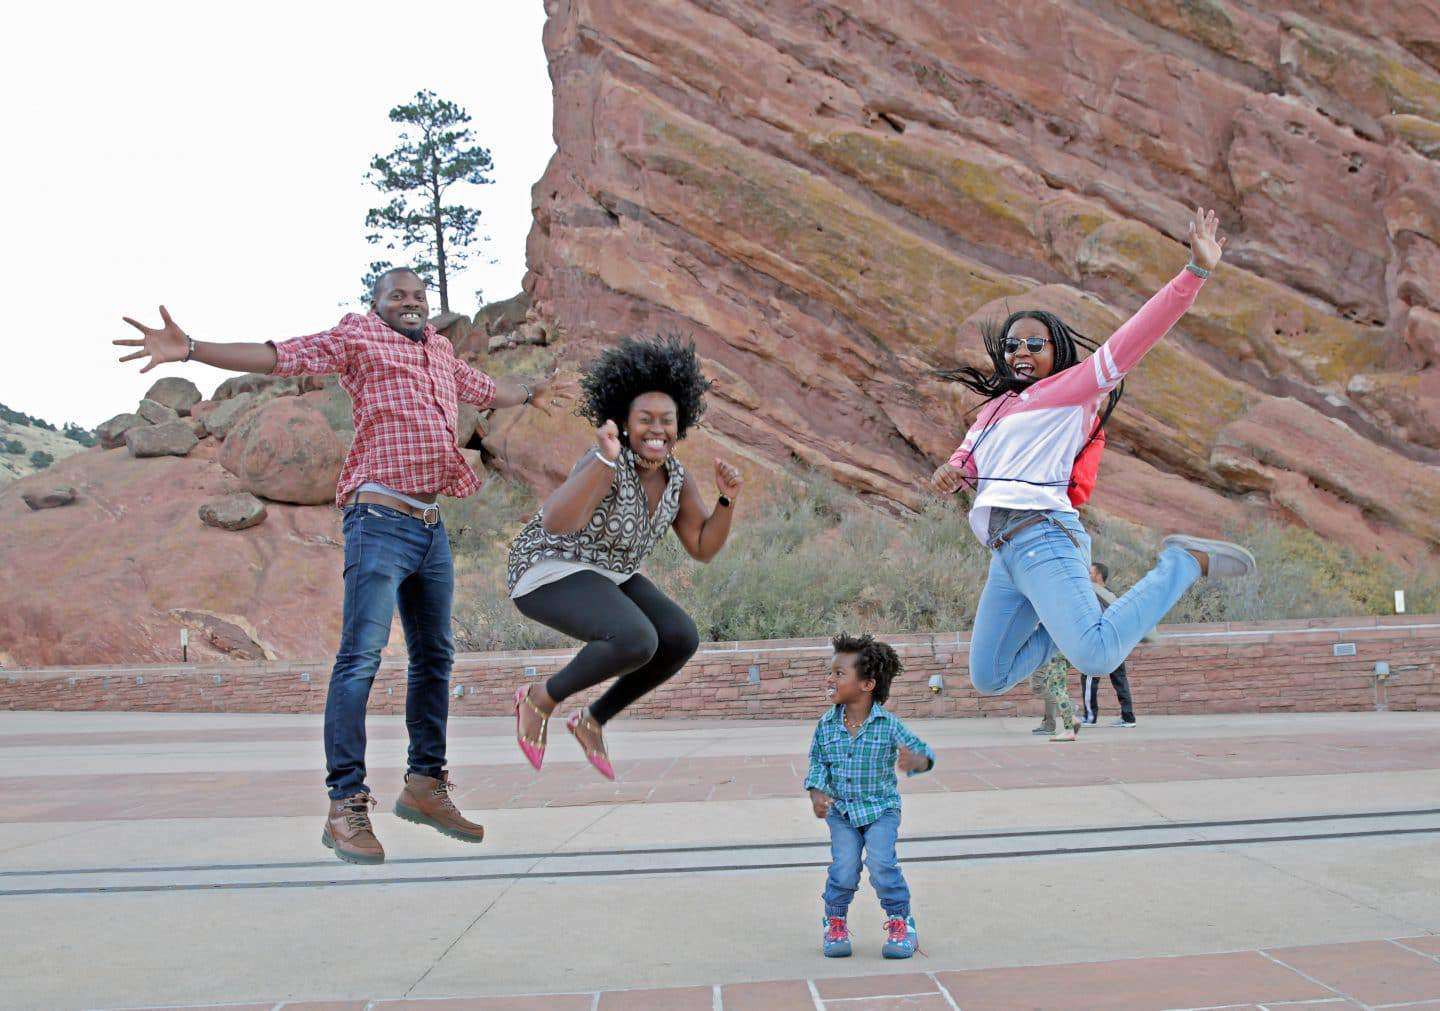 How To Spend The Weekend In Denver With Kids